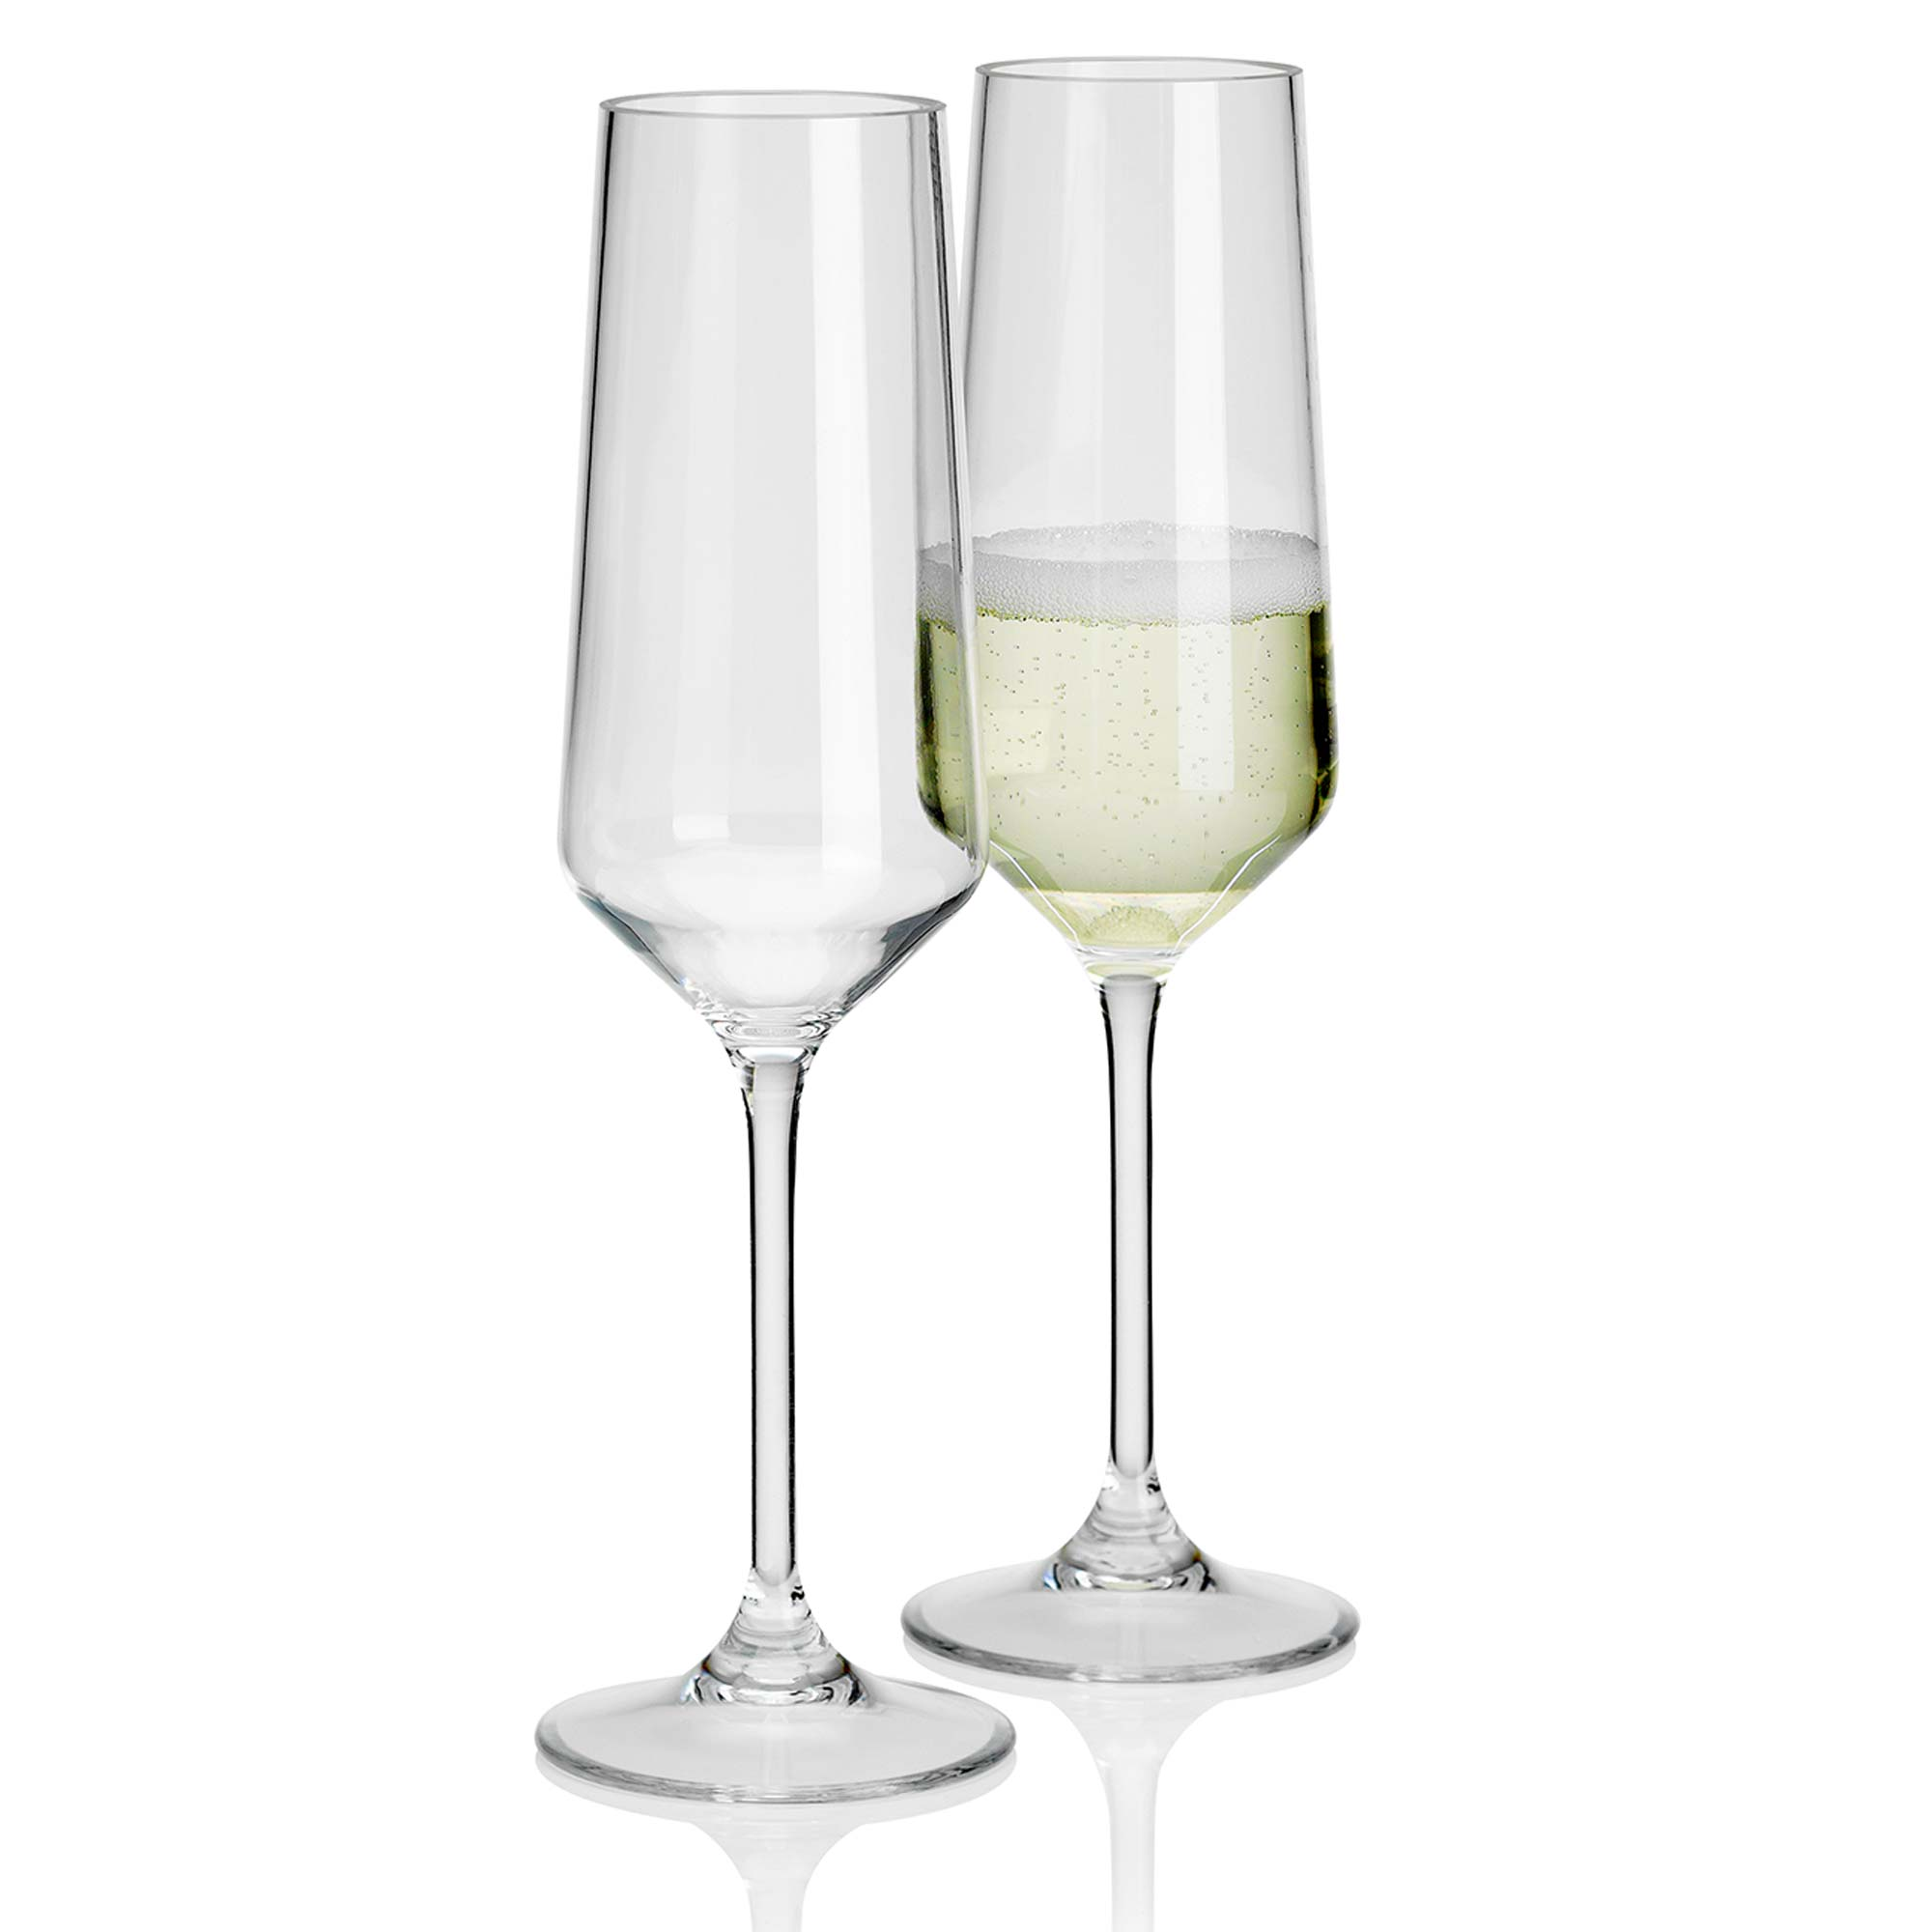 savoy plastic champagne flutes 290ml at drinkstuff. Black Bedroom Furniture Sets. Home Design Ideas